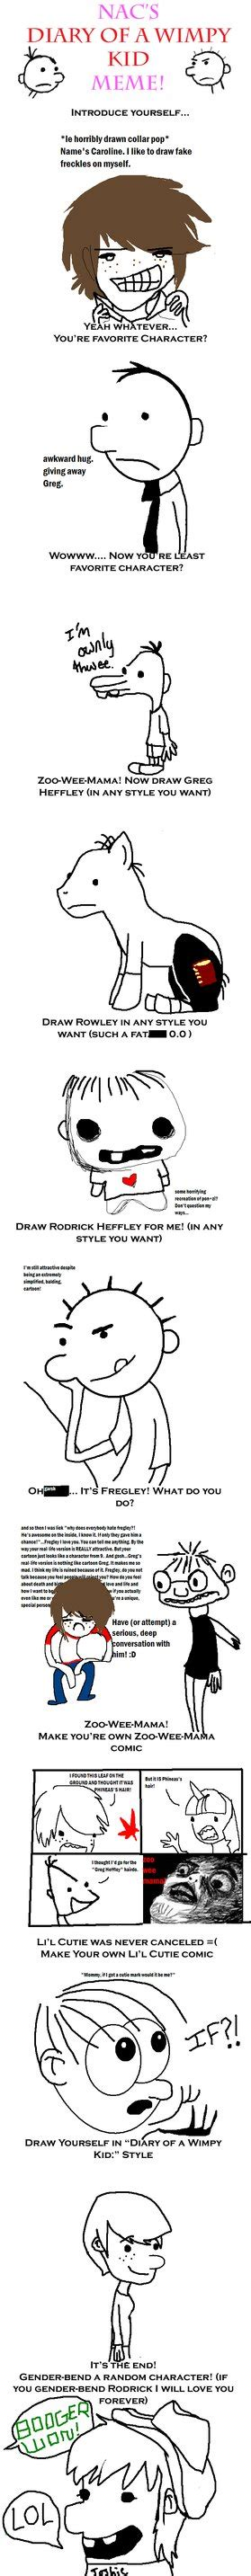 Diary Of A Wimpy Kid Memes - diary of a wimpy kid meme by abductionfromabove on deviantart